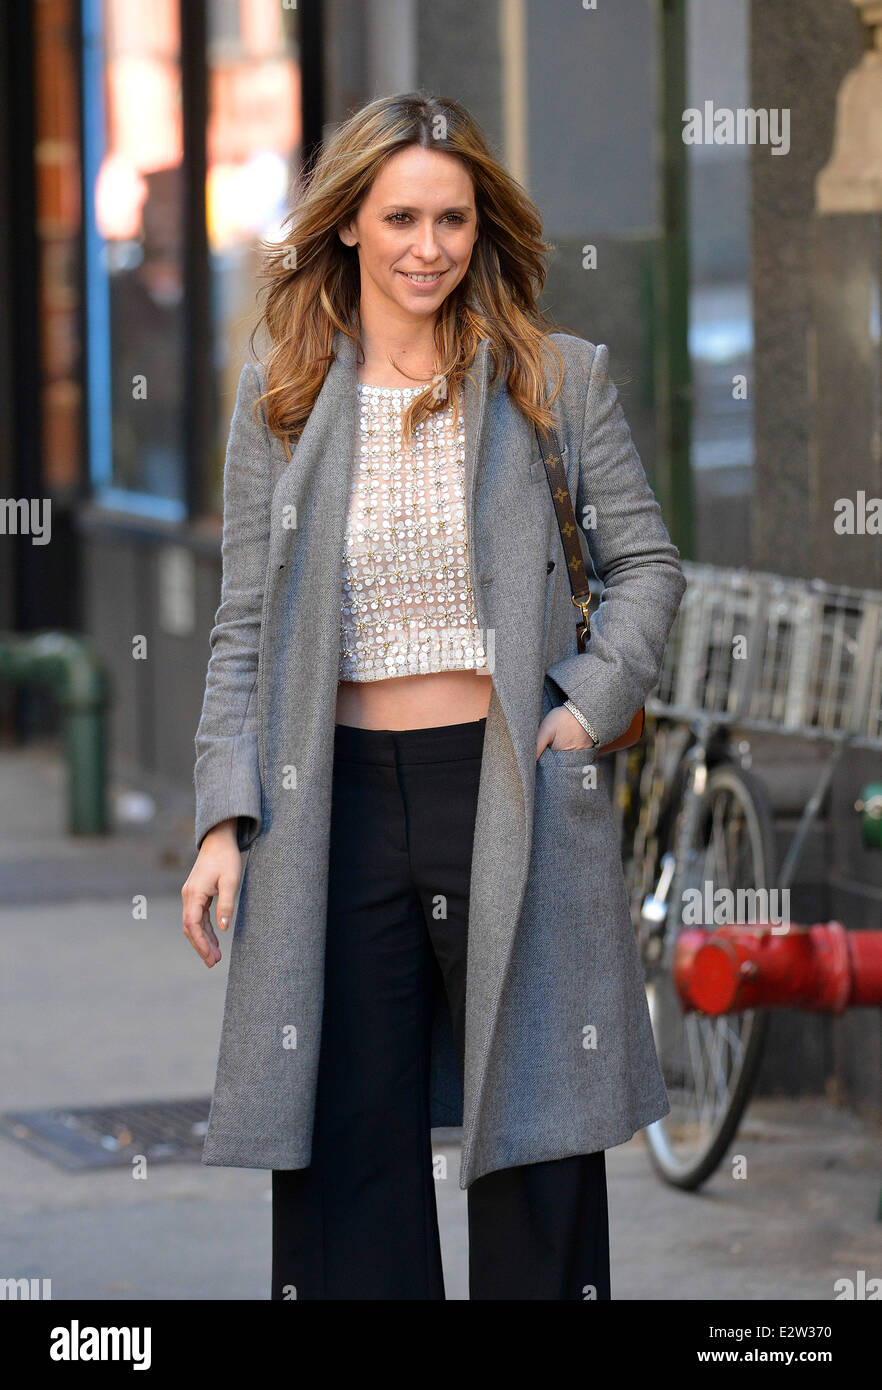 Jennifer Love Hewitt Bares Her Midriff On A Chilly Day In Manhattan